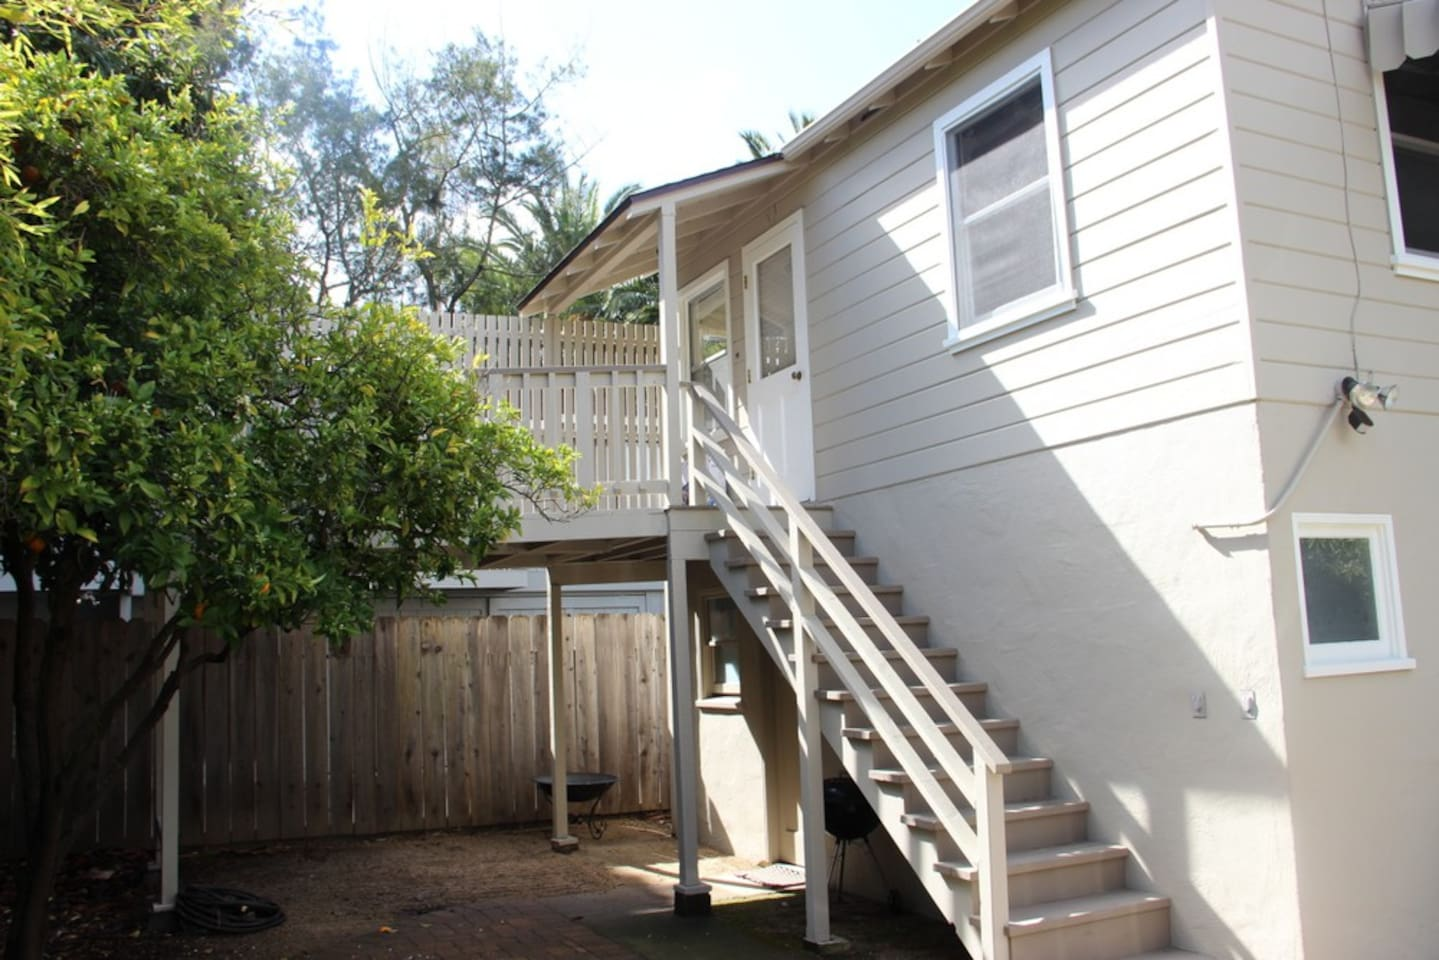 The apartment is located on the second story above the garage. There is a small deck off the entrance surrounded by a Loquat and Orange tree.